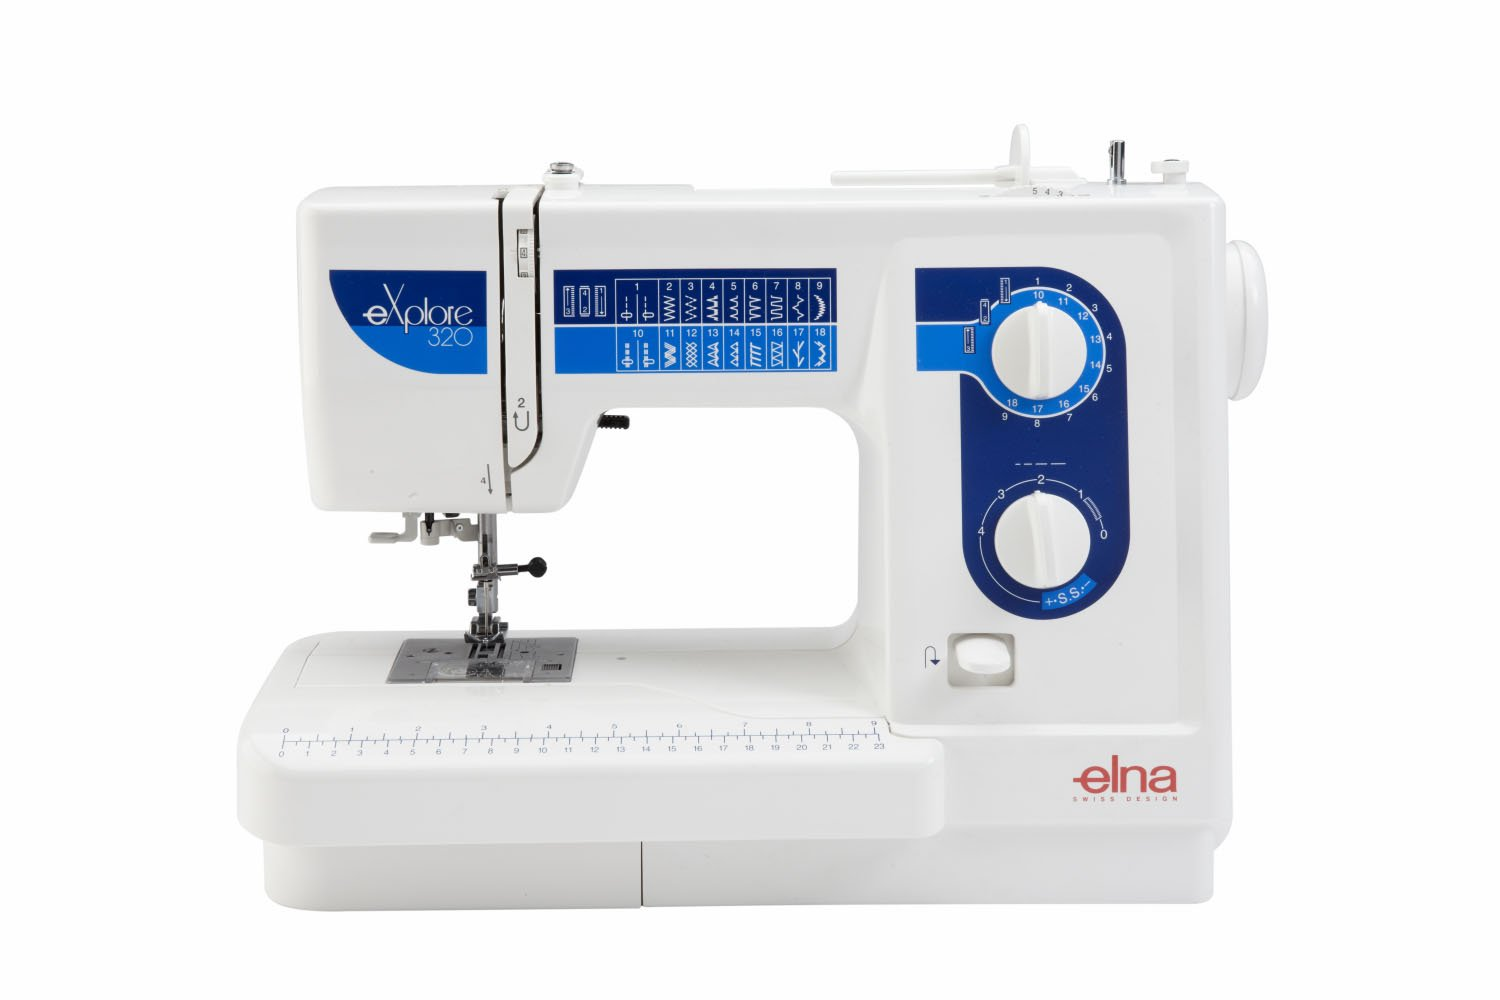 Elna eXplore 320 Mechanical Sewing Machine